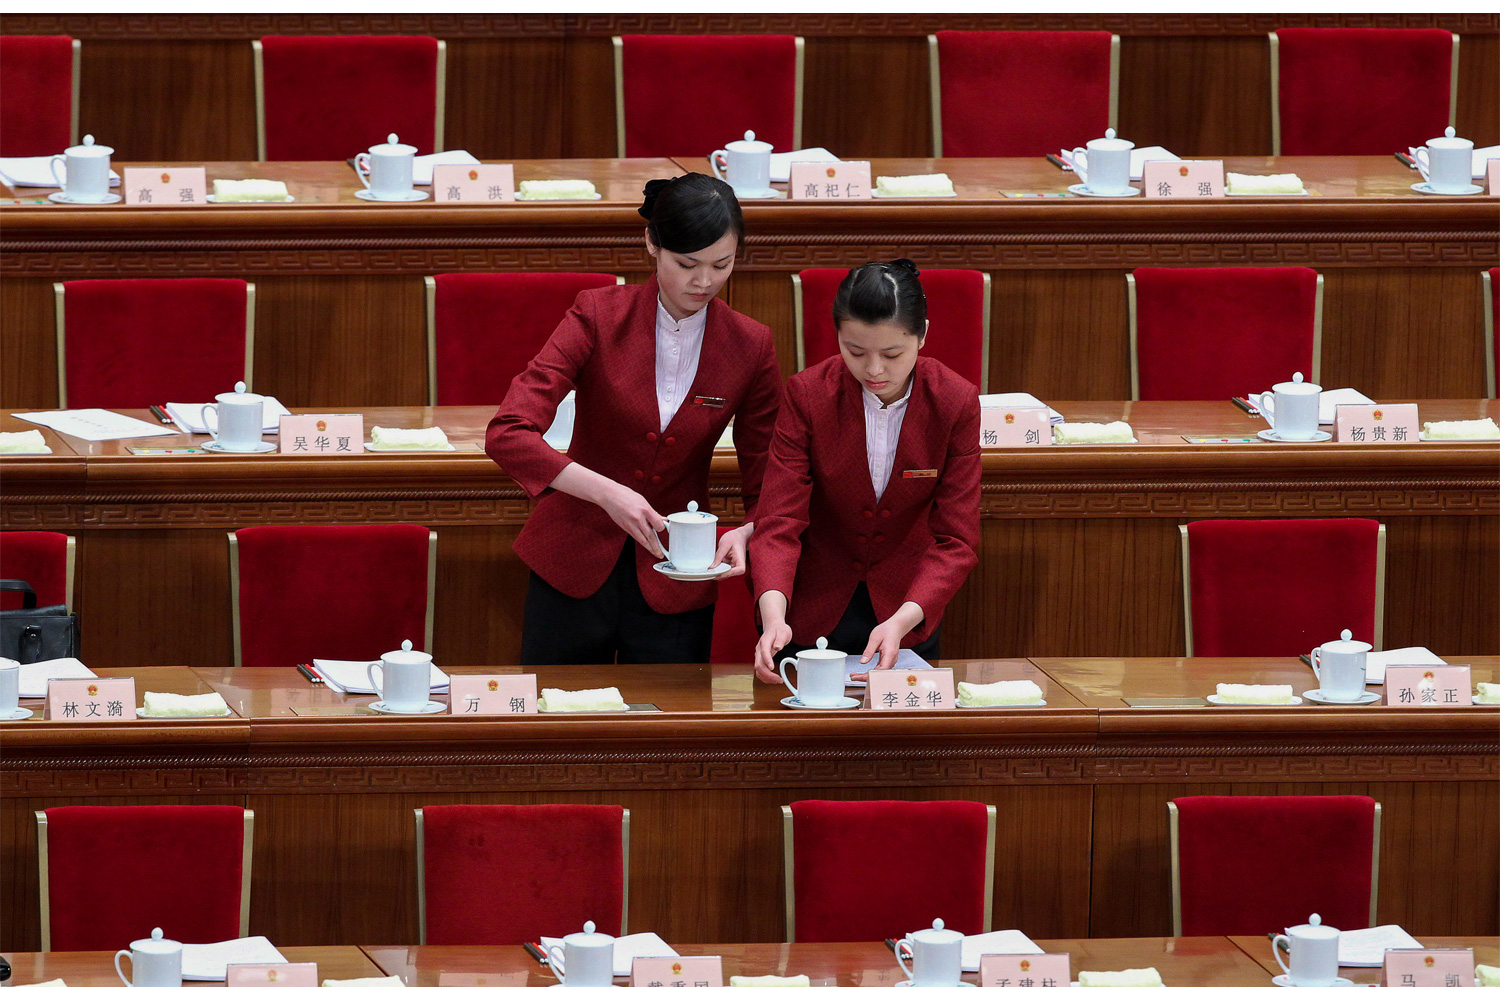 Two waitresses arrange tea cups at each parliament member's seat in the Great Hall of the People, March 5, 2010, for the Third Session of the 11th National People's Congress.